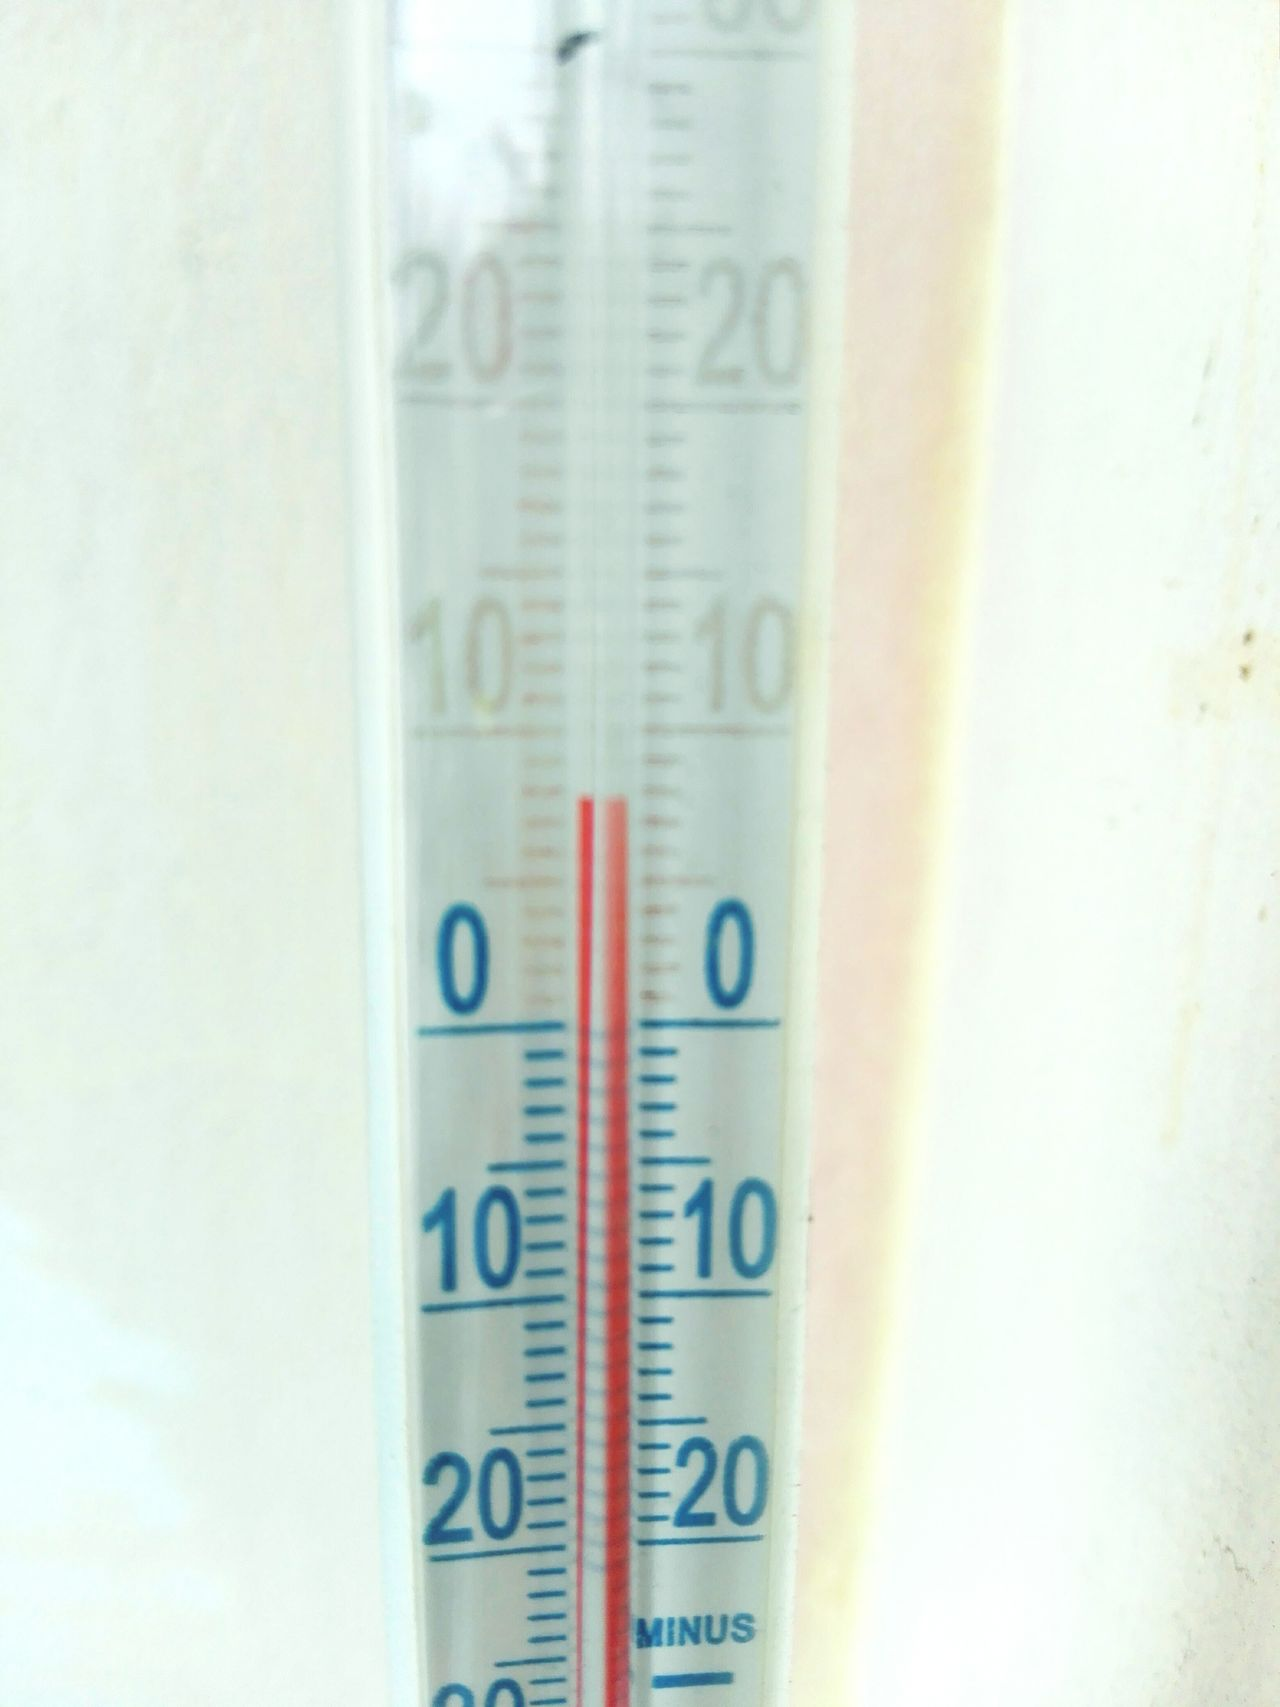 Thermometer Temperature Close-up Indoors  No People Showcase: 2016 Romania December Winter Morning Wintertime Winter Is Coming Winter Celsius 8 8 Degrees Celsius Cold Morning Ionita Veronicaionita Winter Is Coming... @WOLFZUACHiV Wolfzuachiv Showcase: December Edited By @wolfzuachis Winter Is Here Outdoors Winter Is Comming!